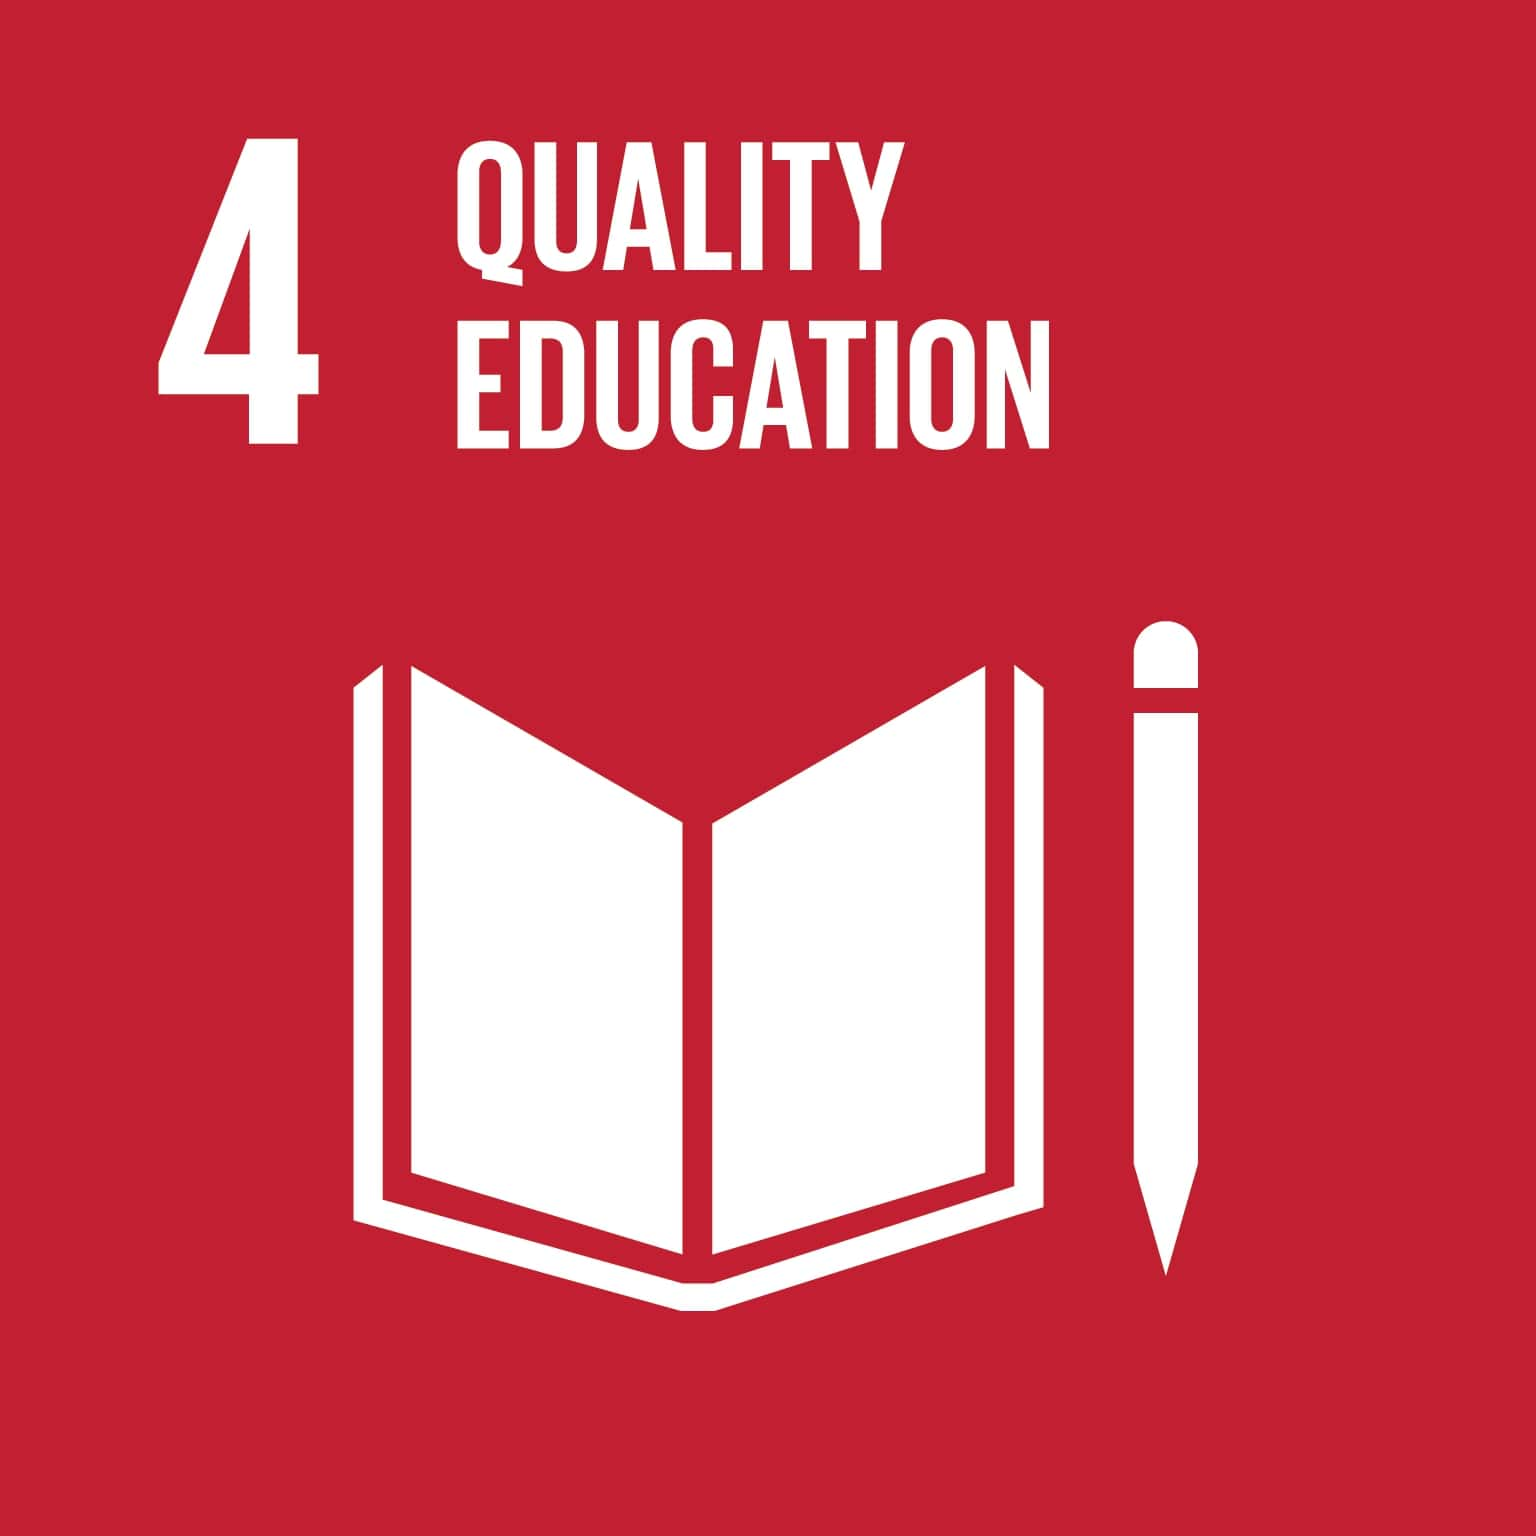 SUSTAINABLE DEVELOPMENT GOAL 4: Ensure inclusive and equitable quality education and promote lifelong learning opportunities for all